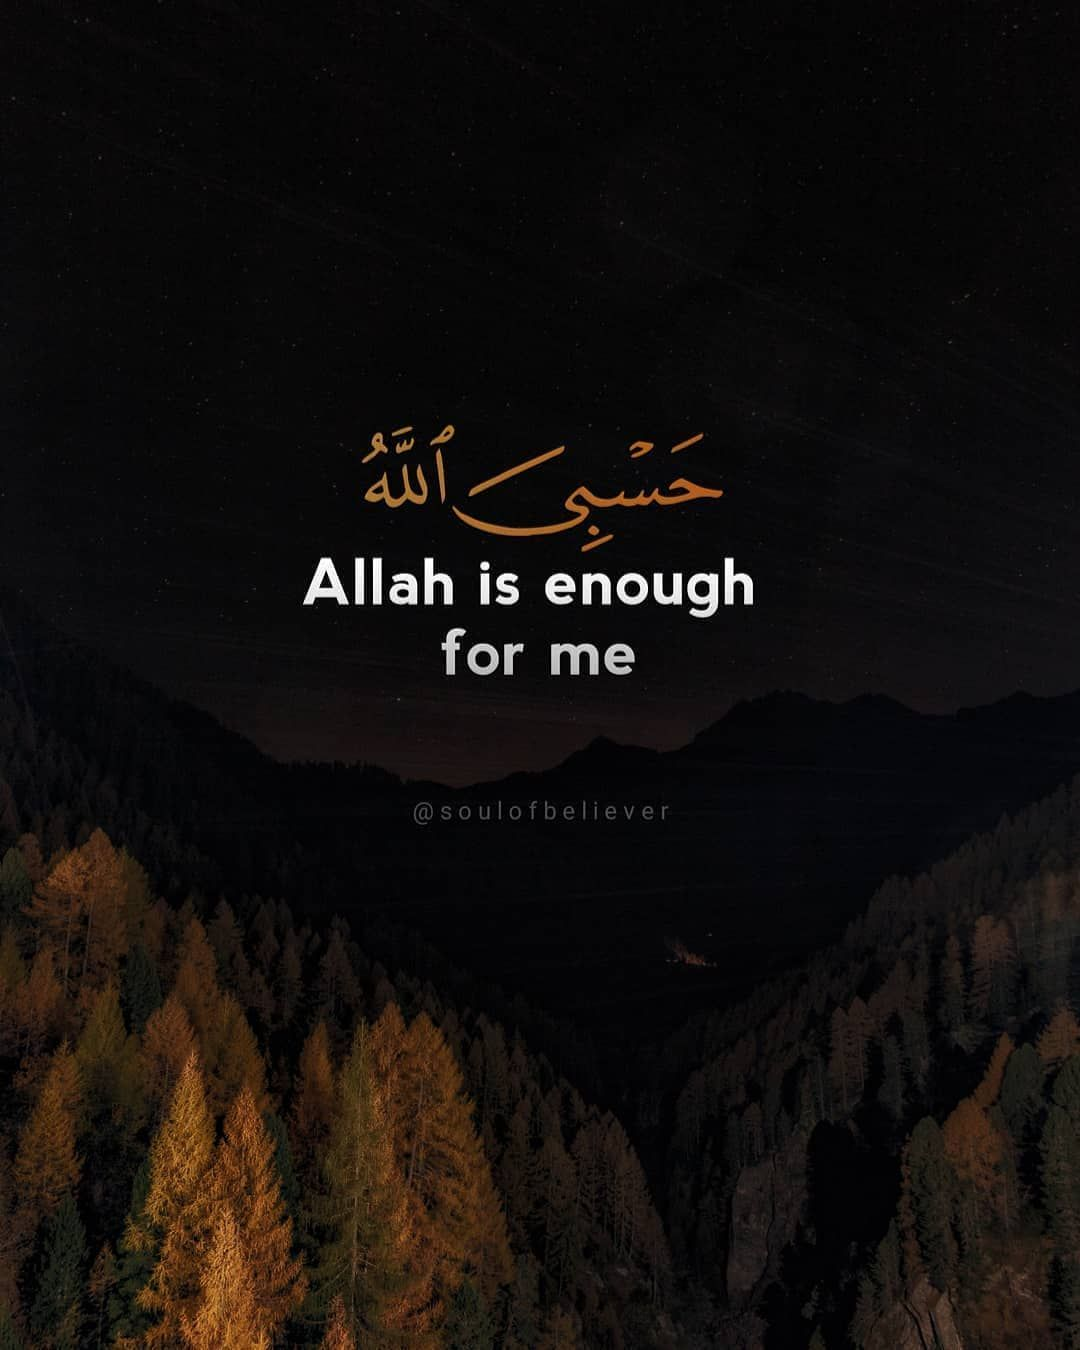 19 9k Likes 65 Comments Islam Is Perfect Islam4everyone On Instagram Allah Is Enough For Quran Quotes Quran Quotes Verses Islamic Inspirational Quotes